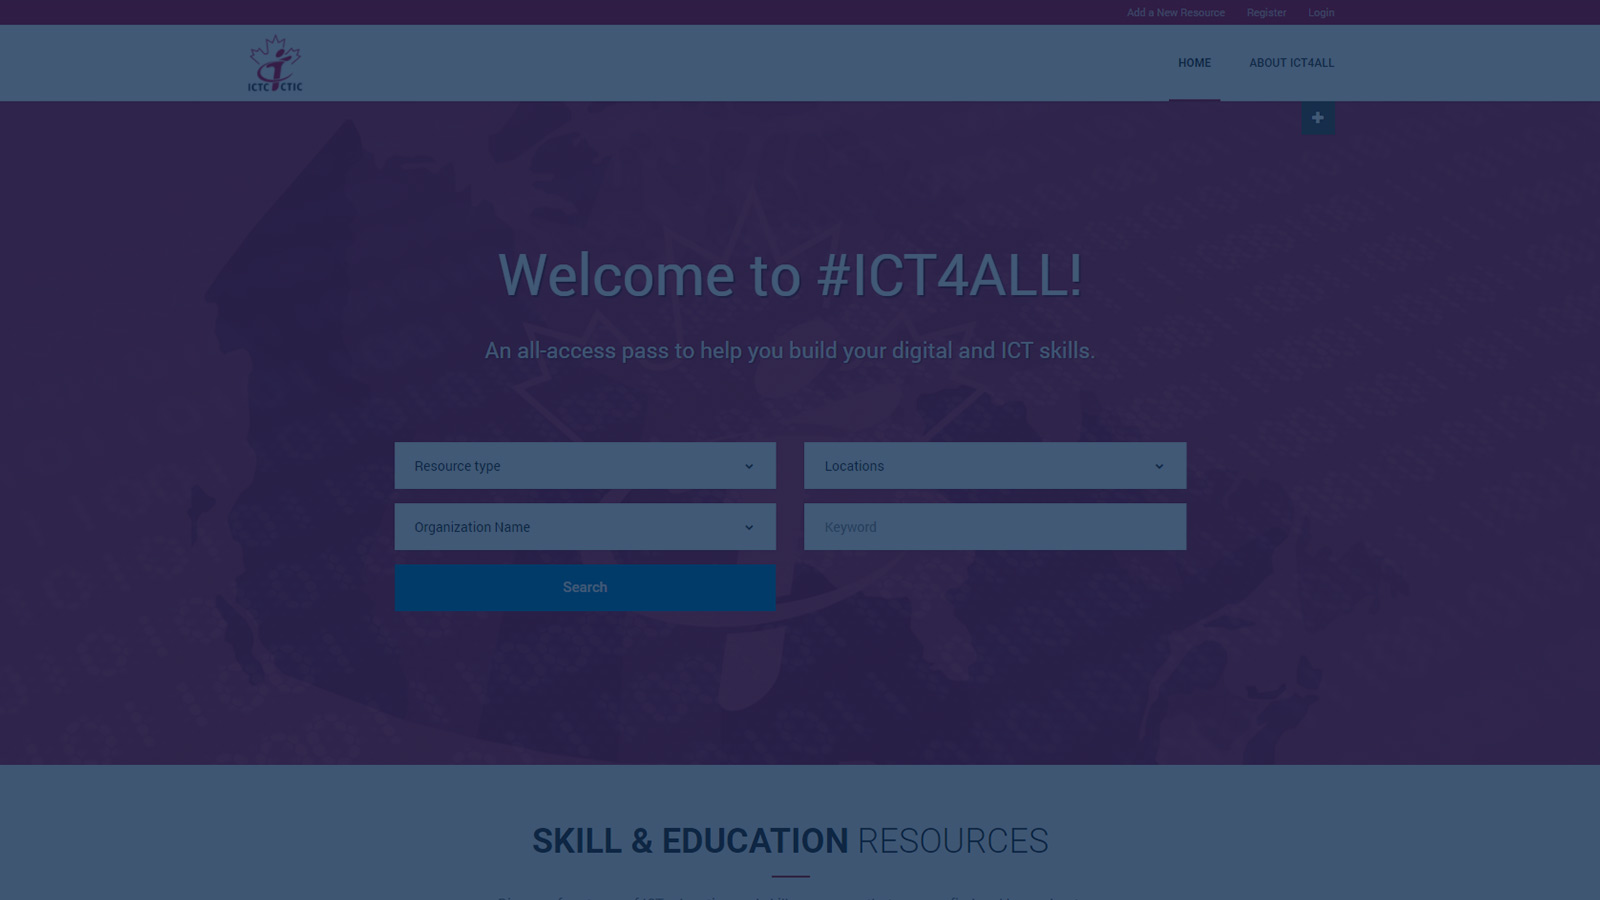 ICT4ALL